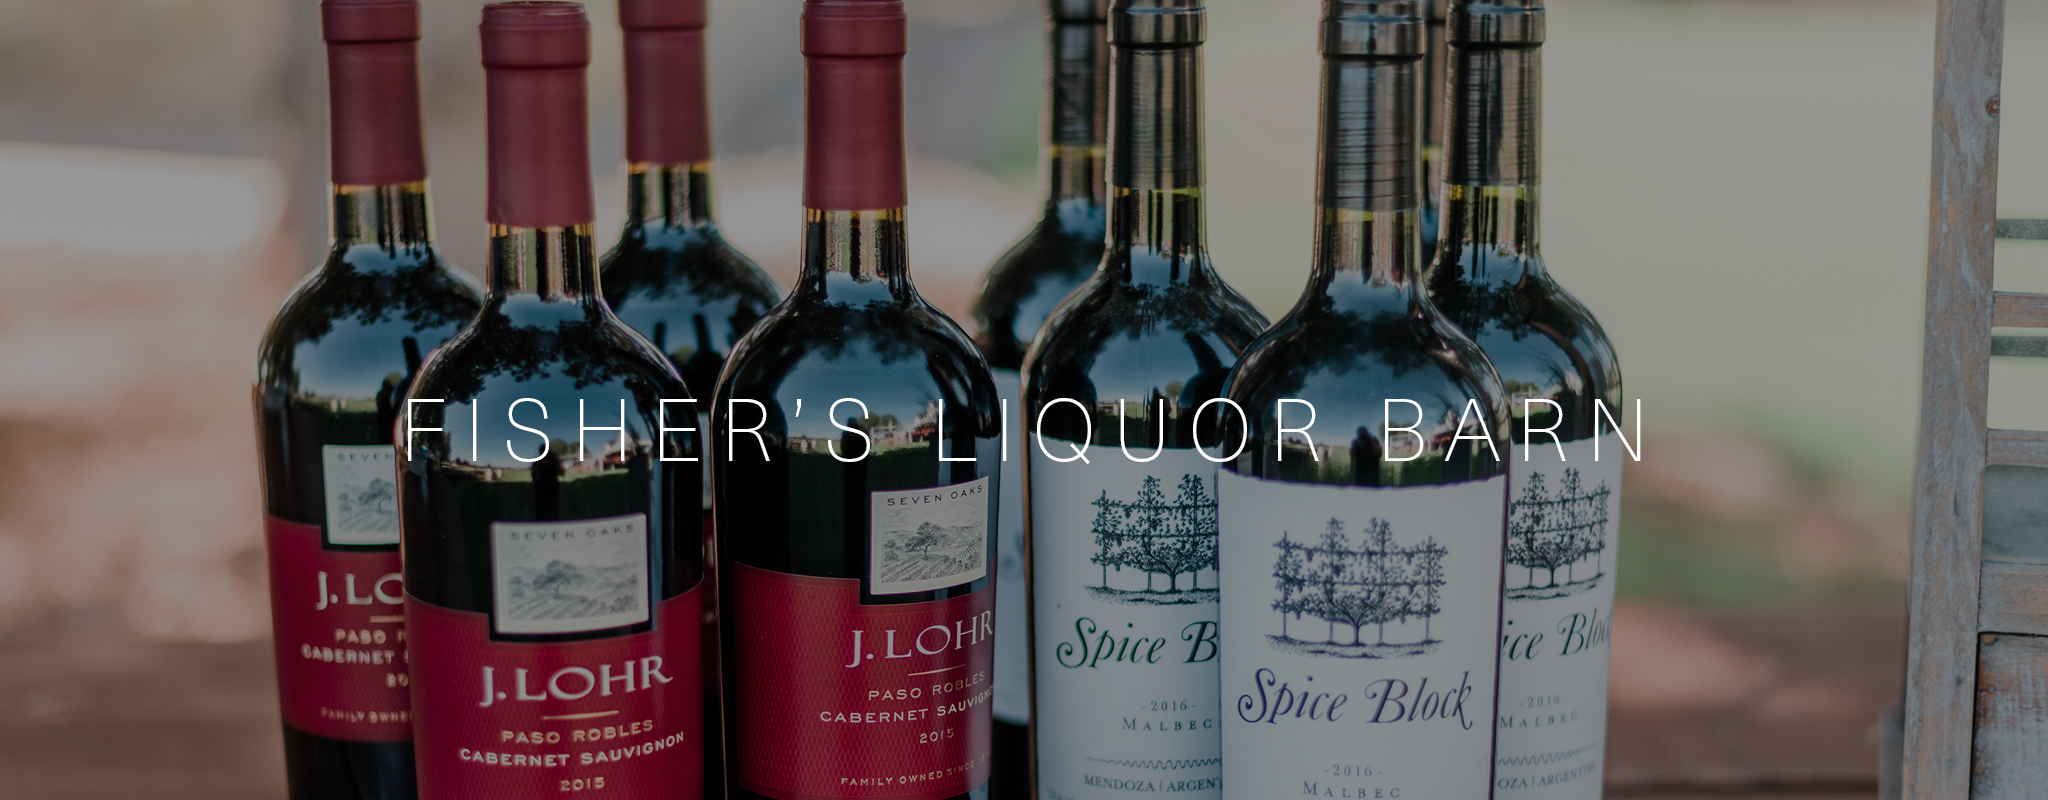 Fisher's Liquor Barn | Liquor Supply & Bartenders in Grand Junction, Colorado featured on WED West Slope - a directory for wedding vendors.